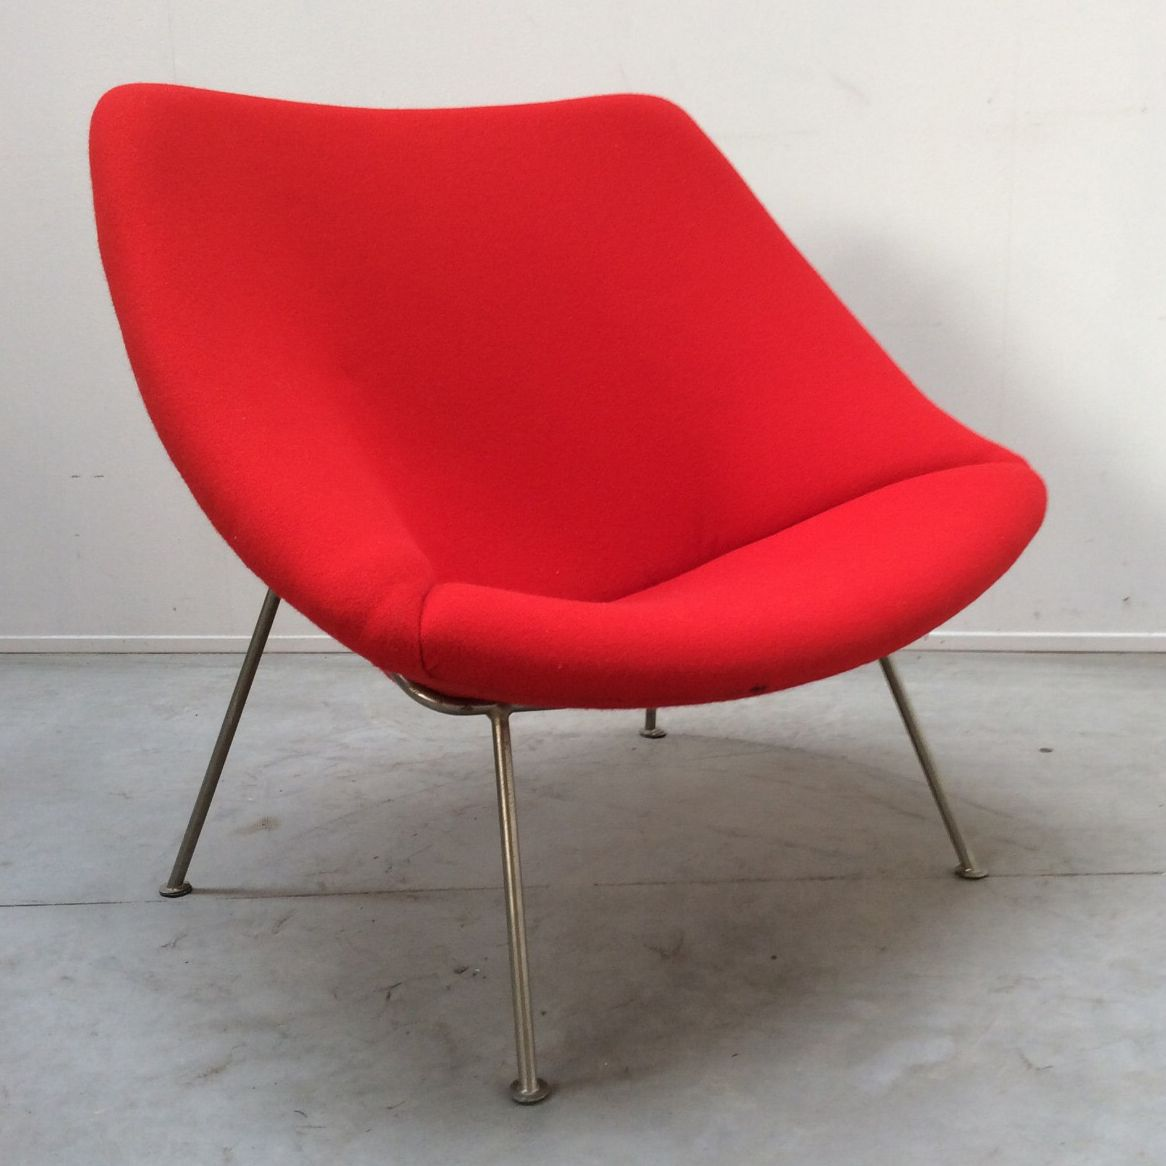 Vintage dutch oyster chair by pierre paulin for artifort for Dutch design chair uk